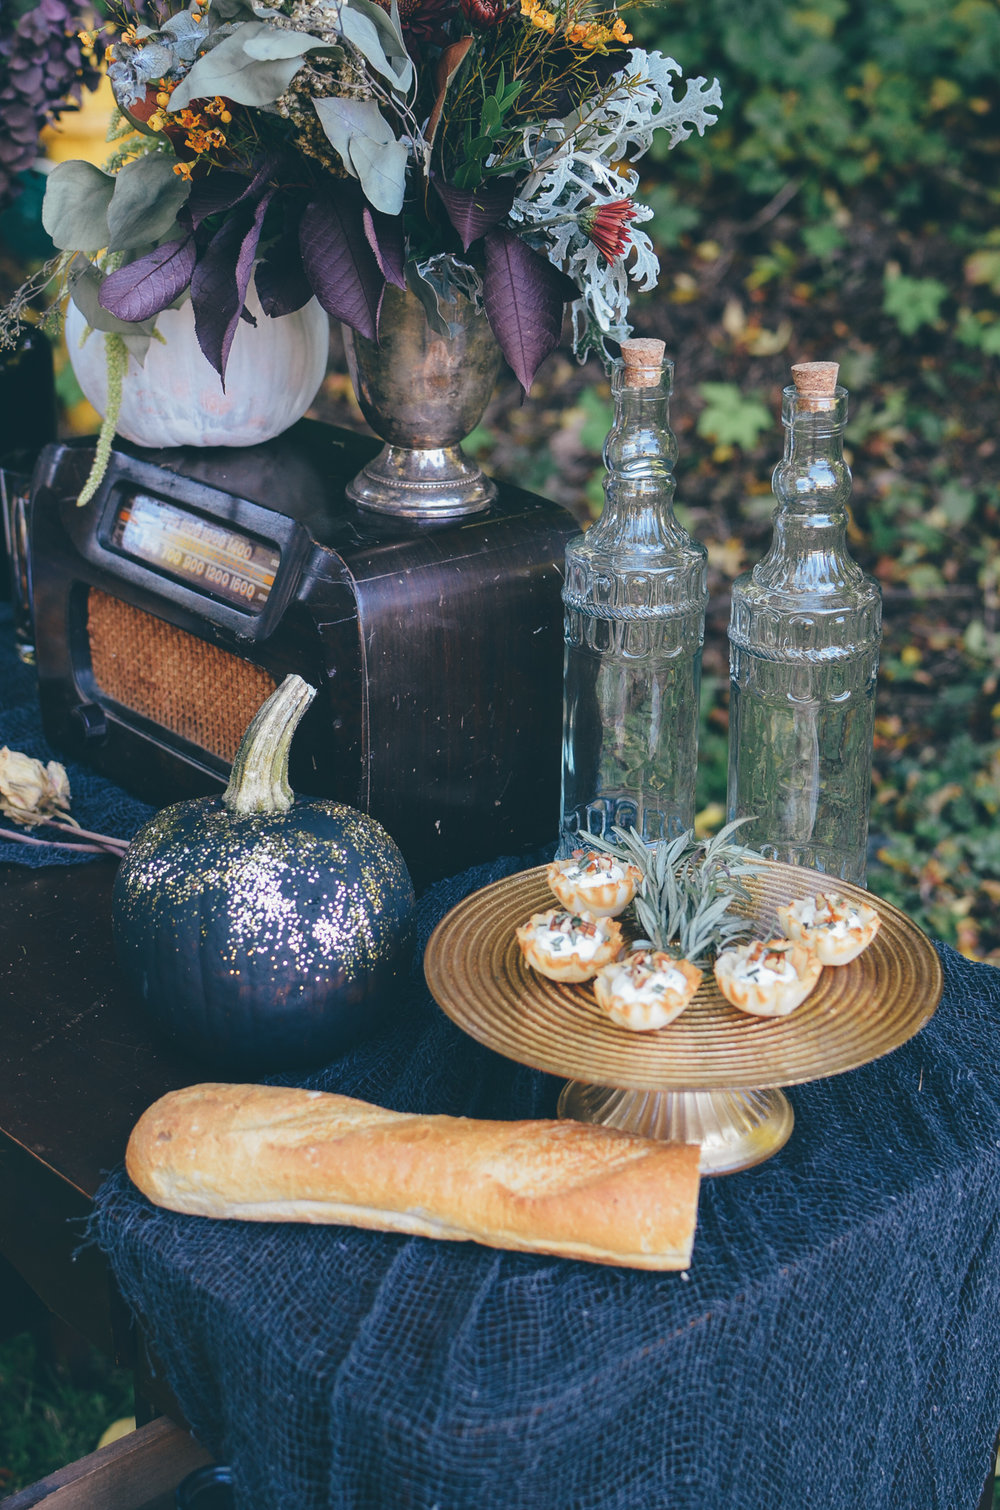 Fall Moody Vintage Hallowen Wedding Vignette Food Styling